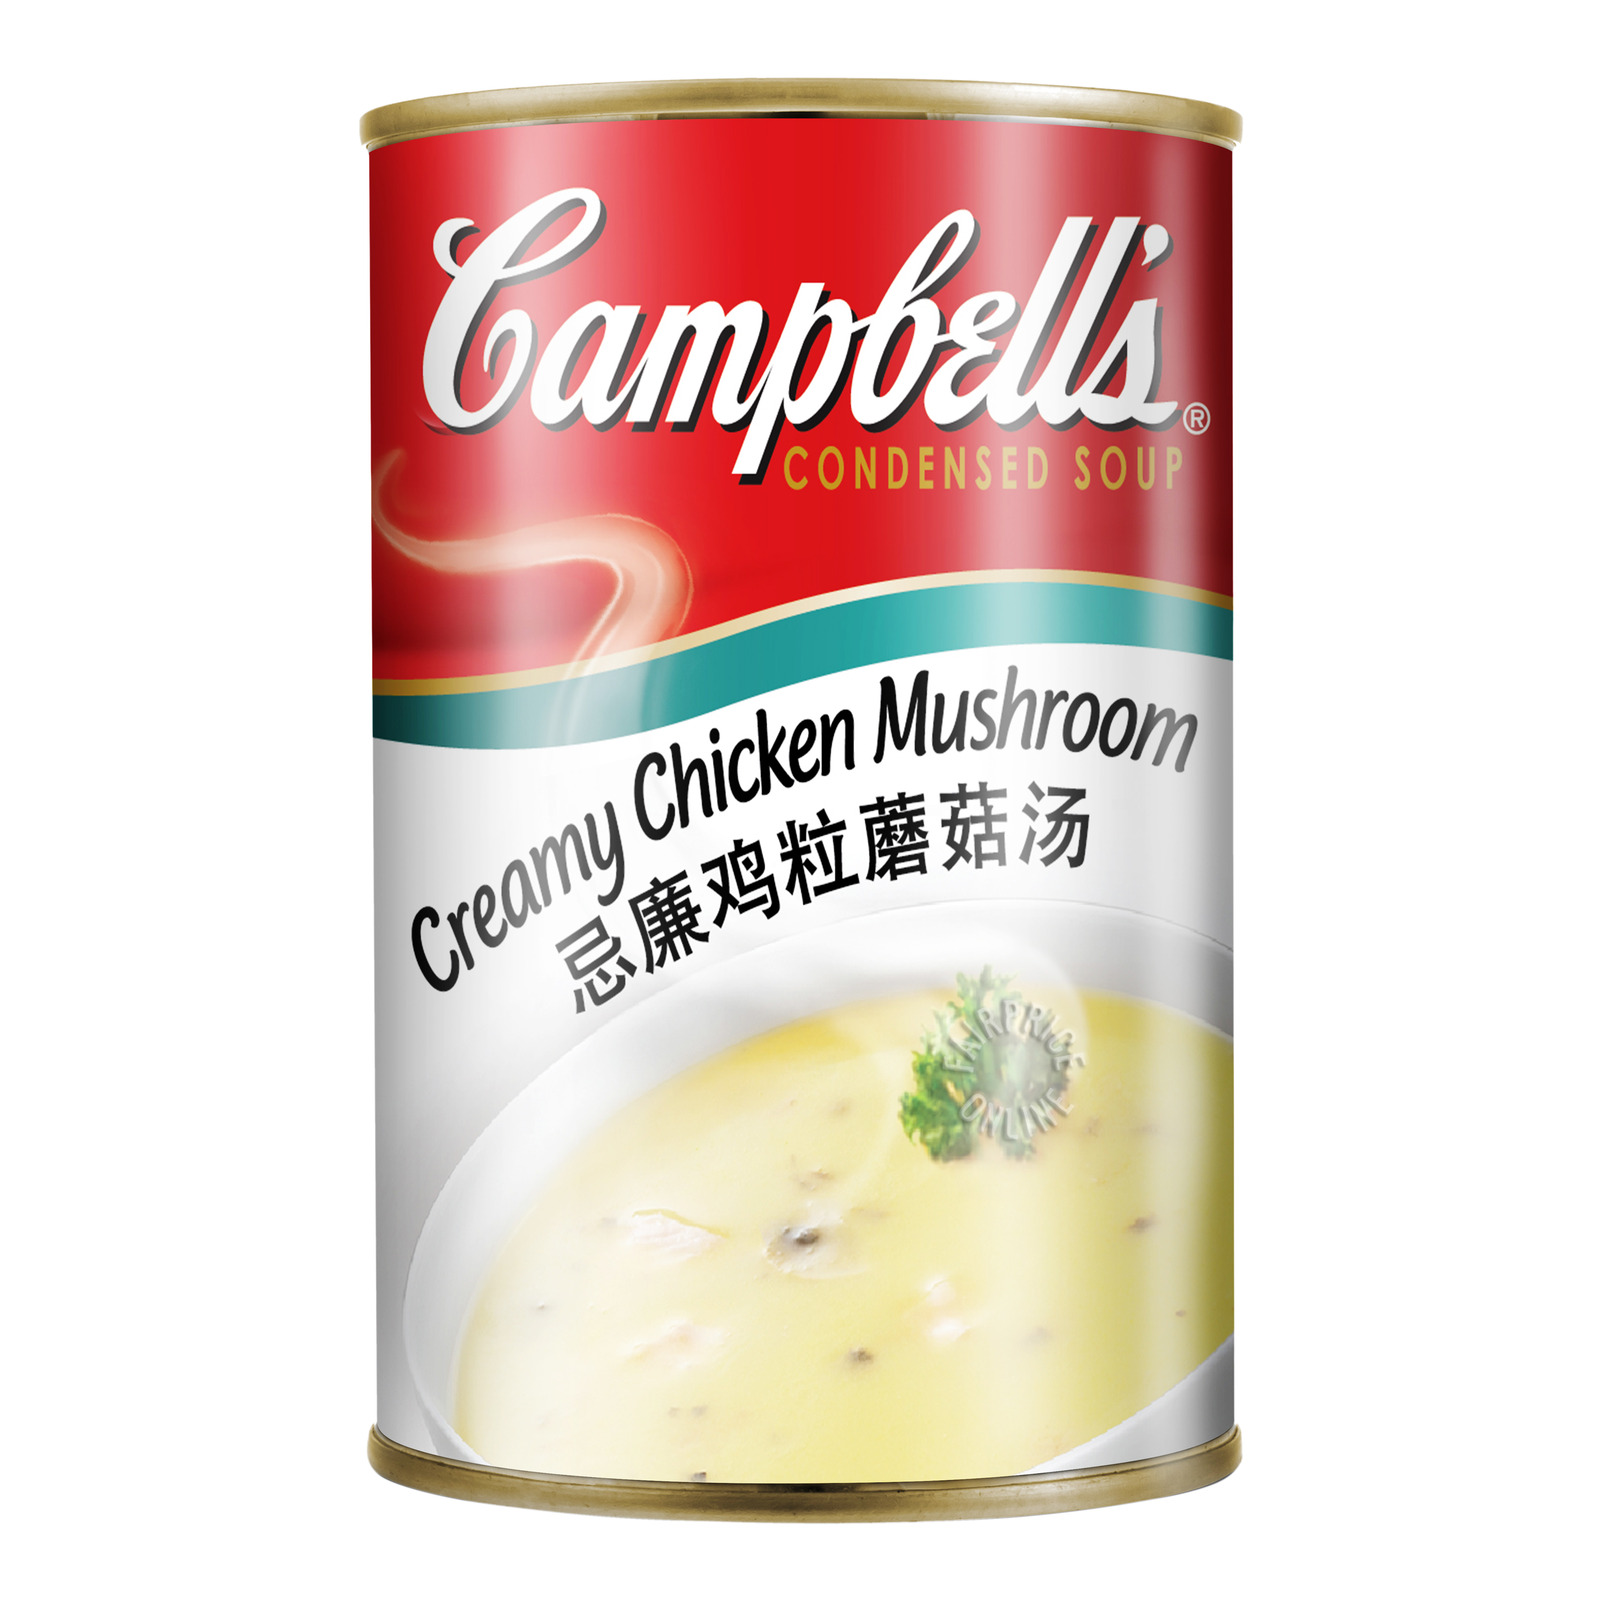 Campbell's Condensed Soup - Creamy Chicken Mushroom